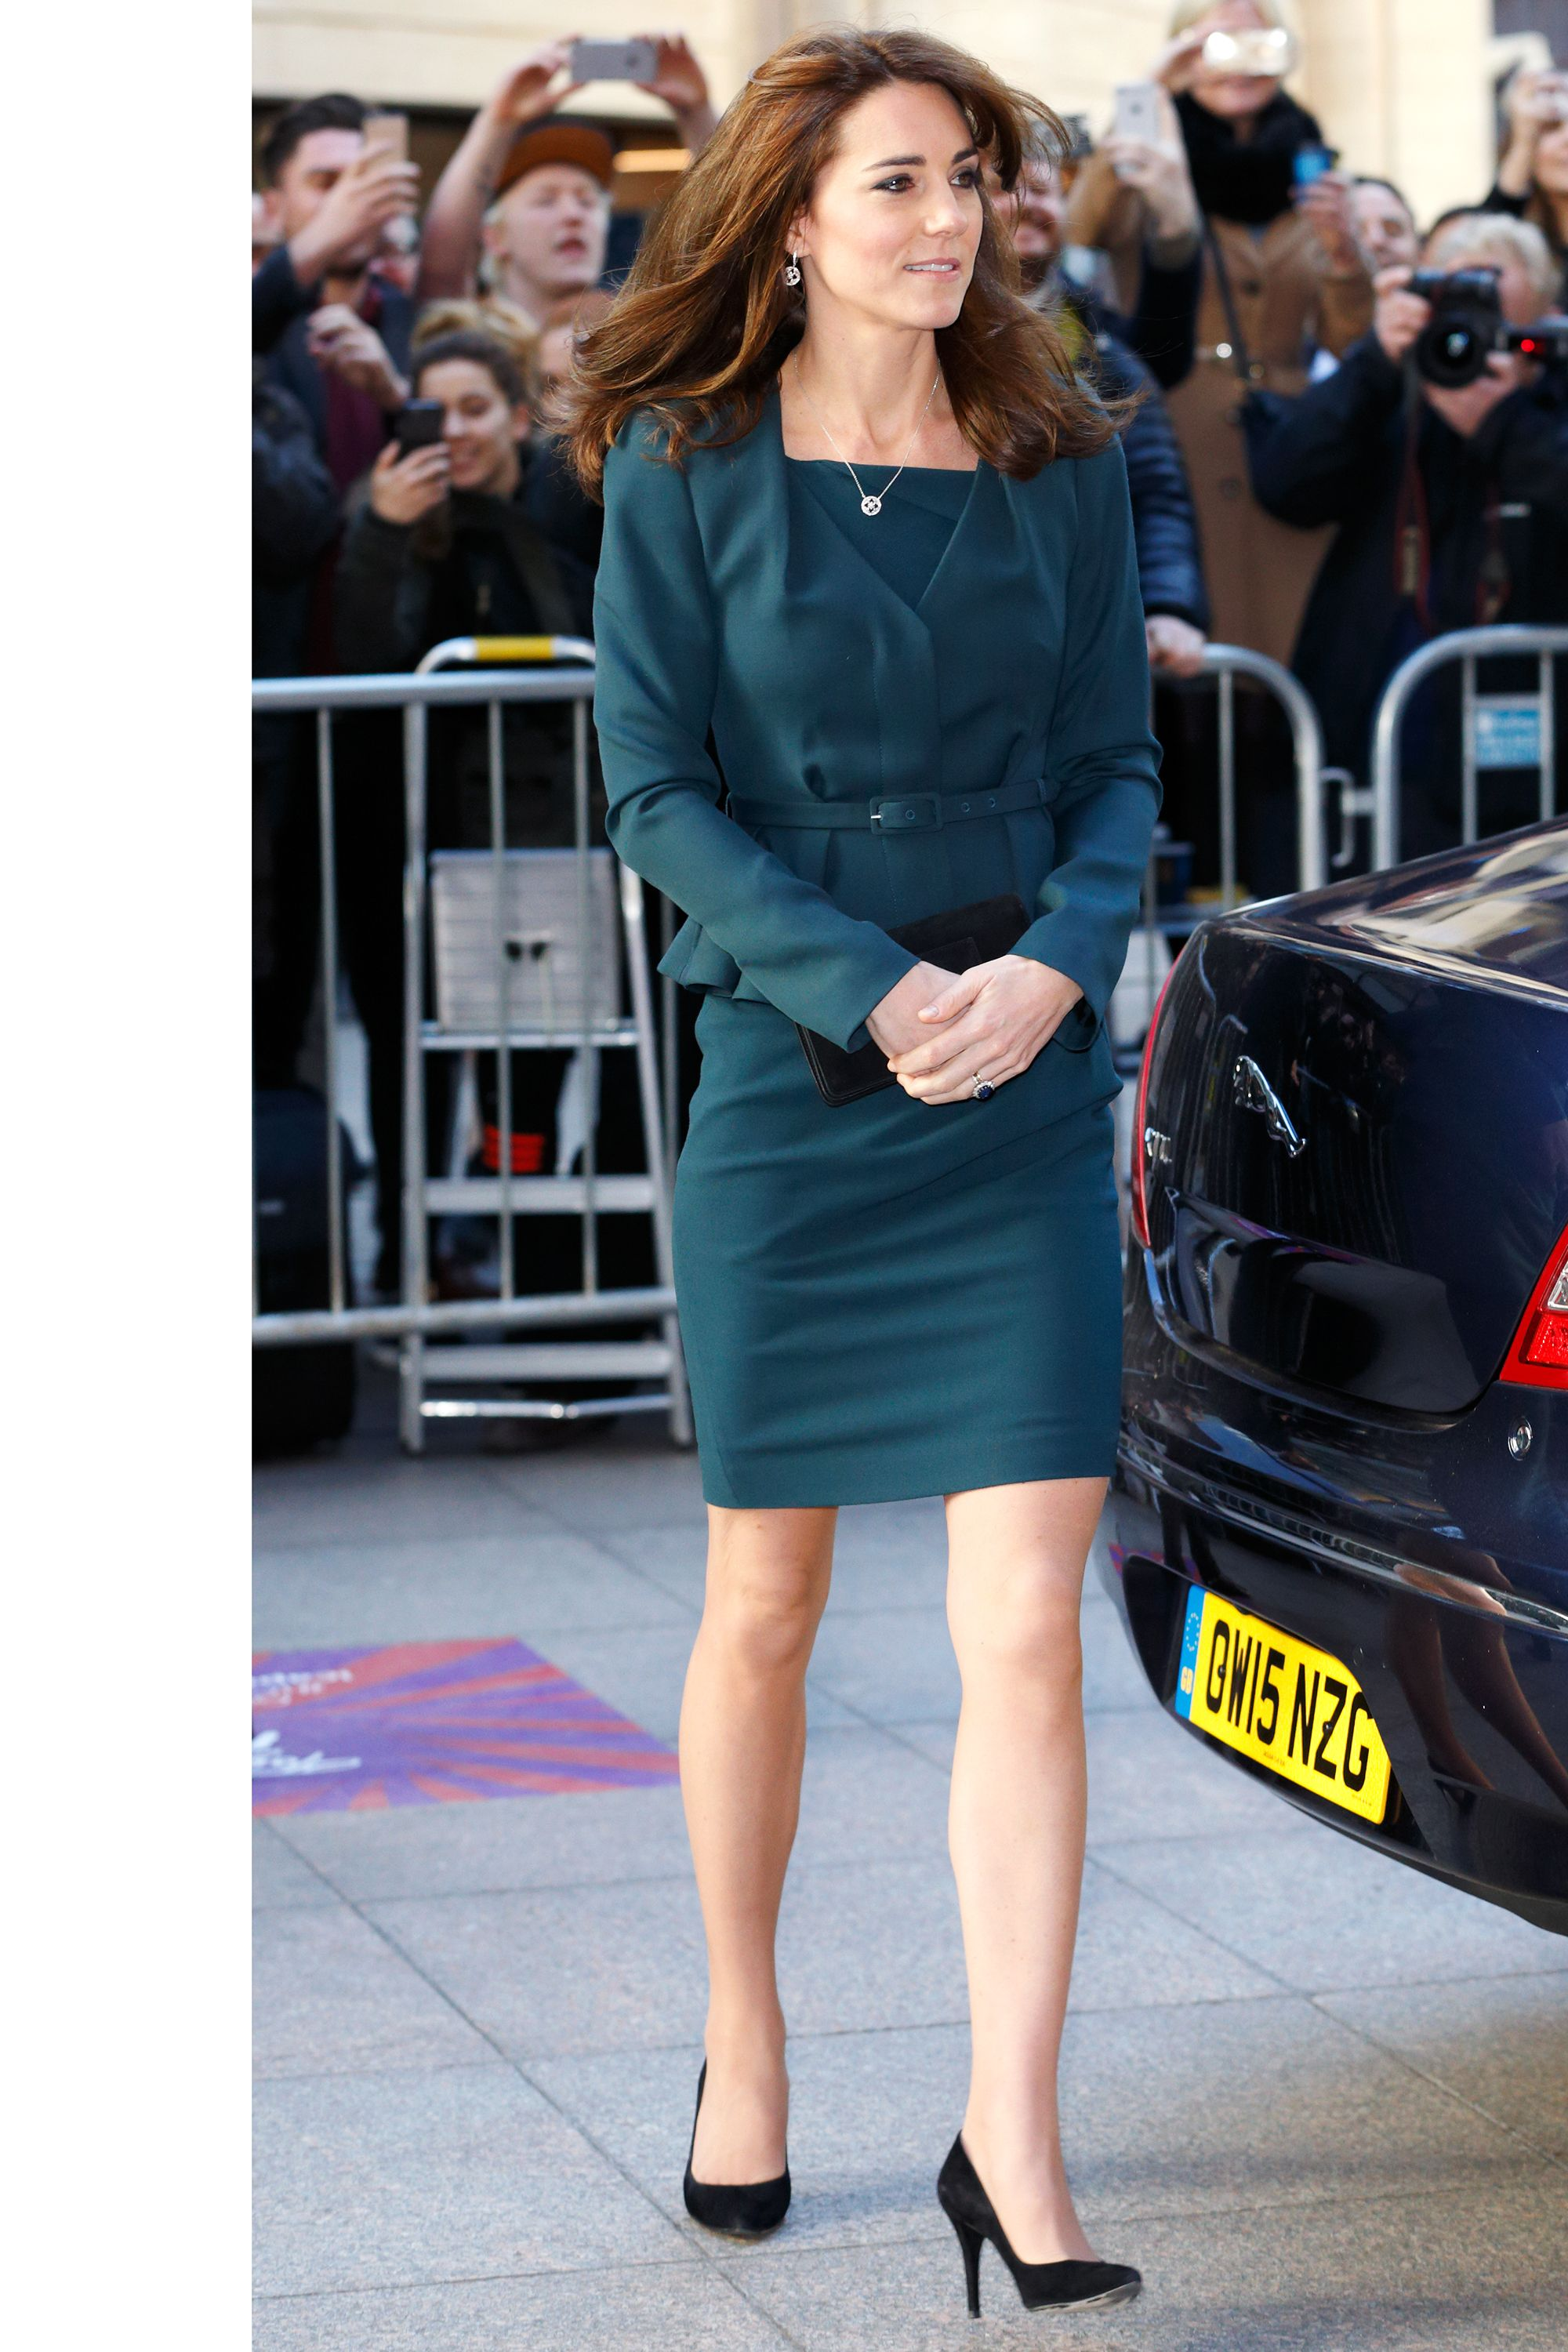 Kate middleton just wore her best maternity dressagain teal suit kate middleton just wore her best maternity dressagain ombrellifo Gallery